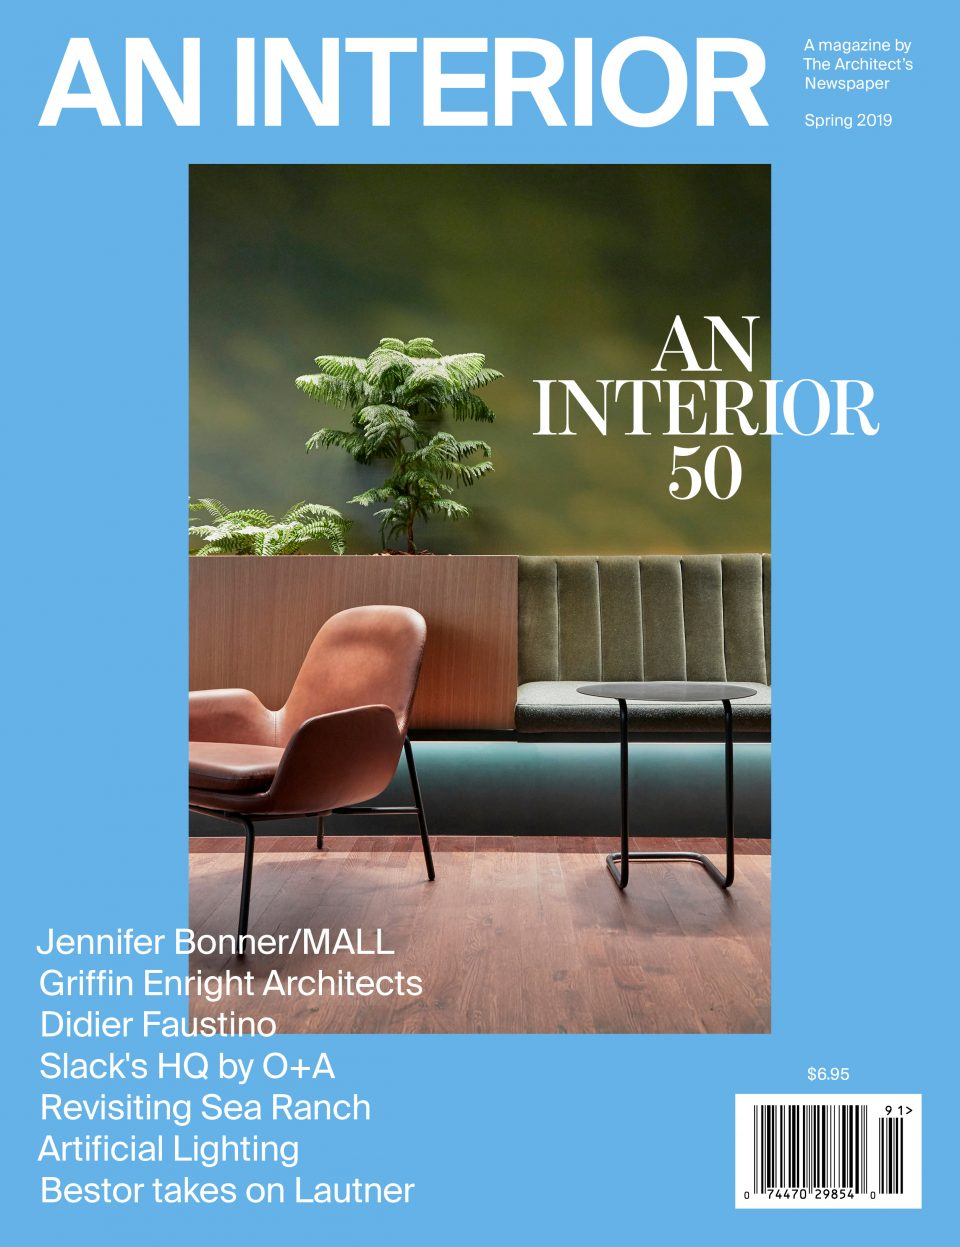 AN Interior Top 50 Architects